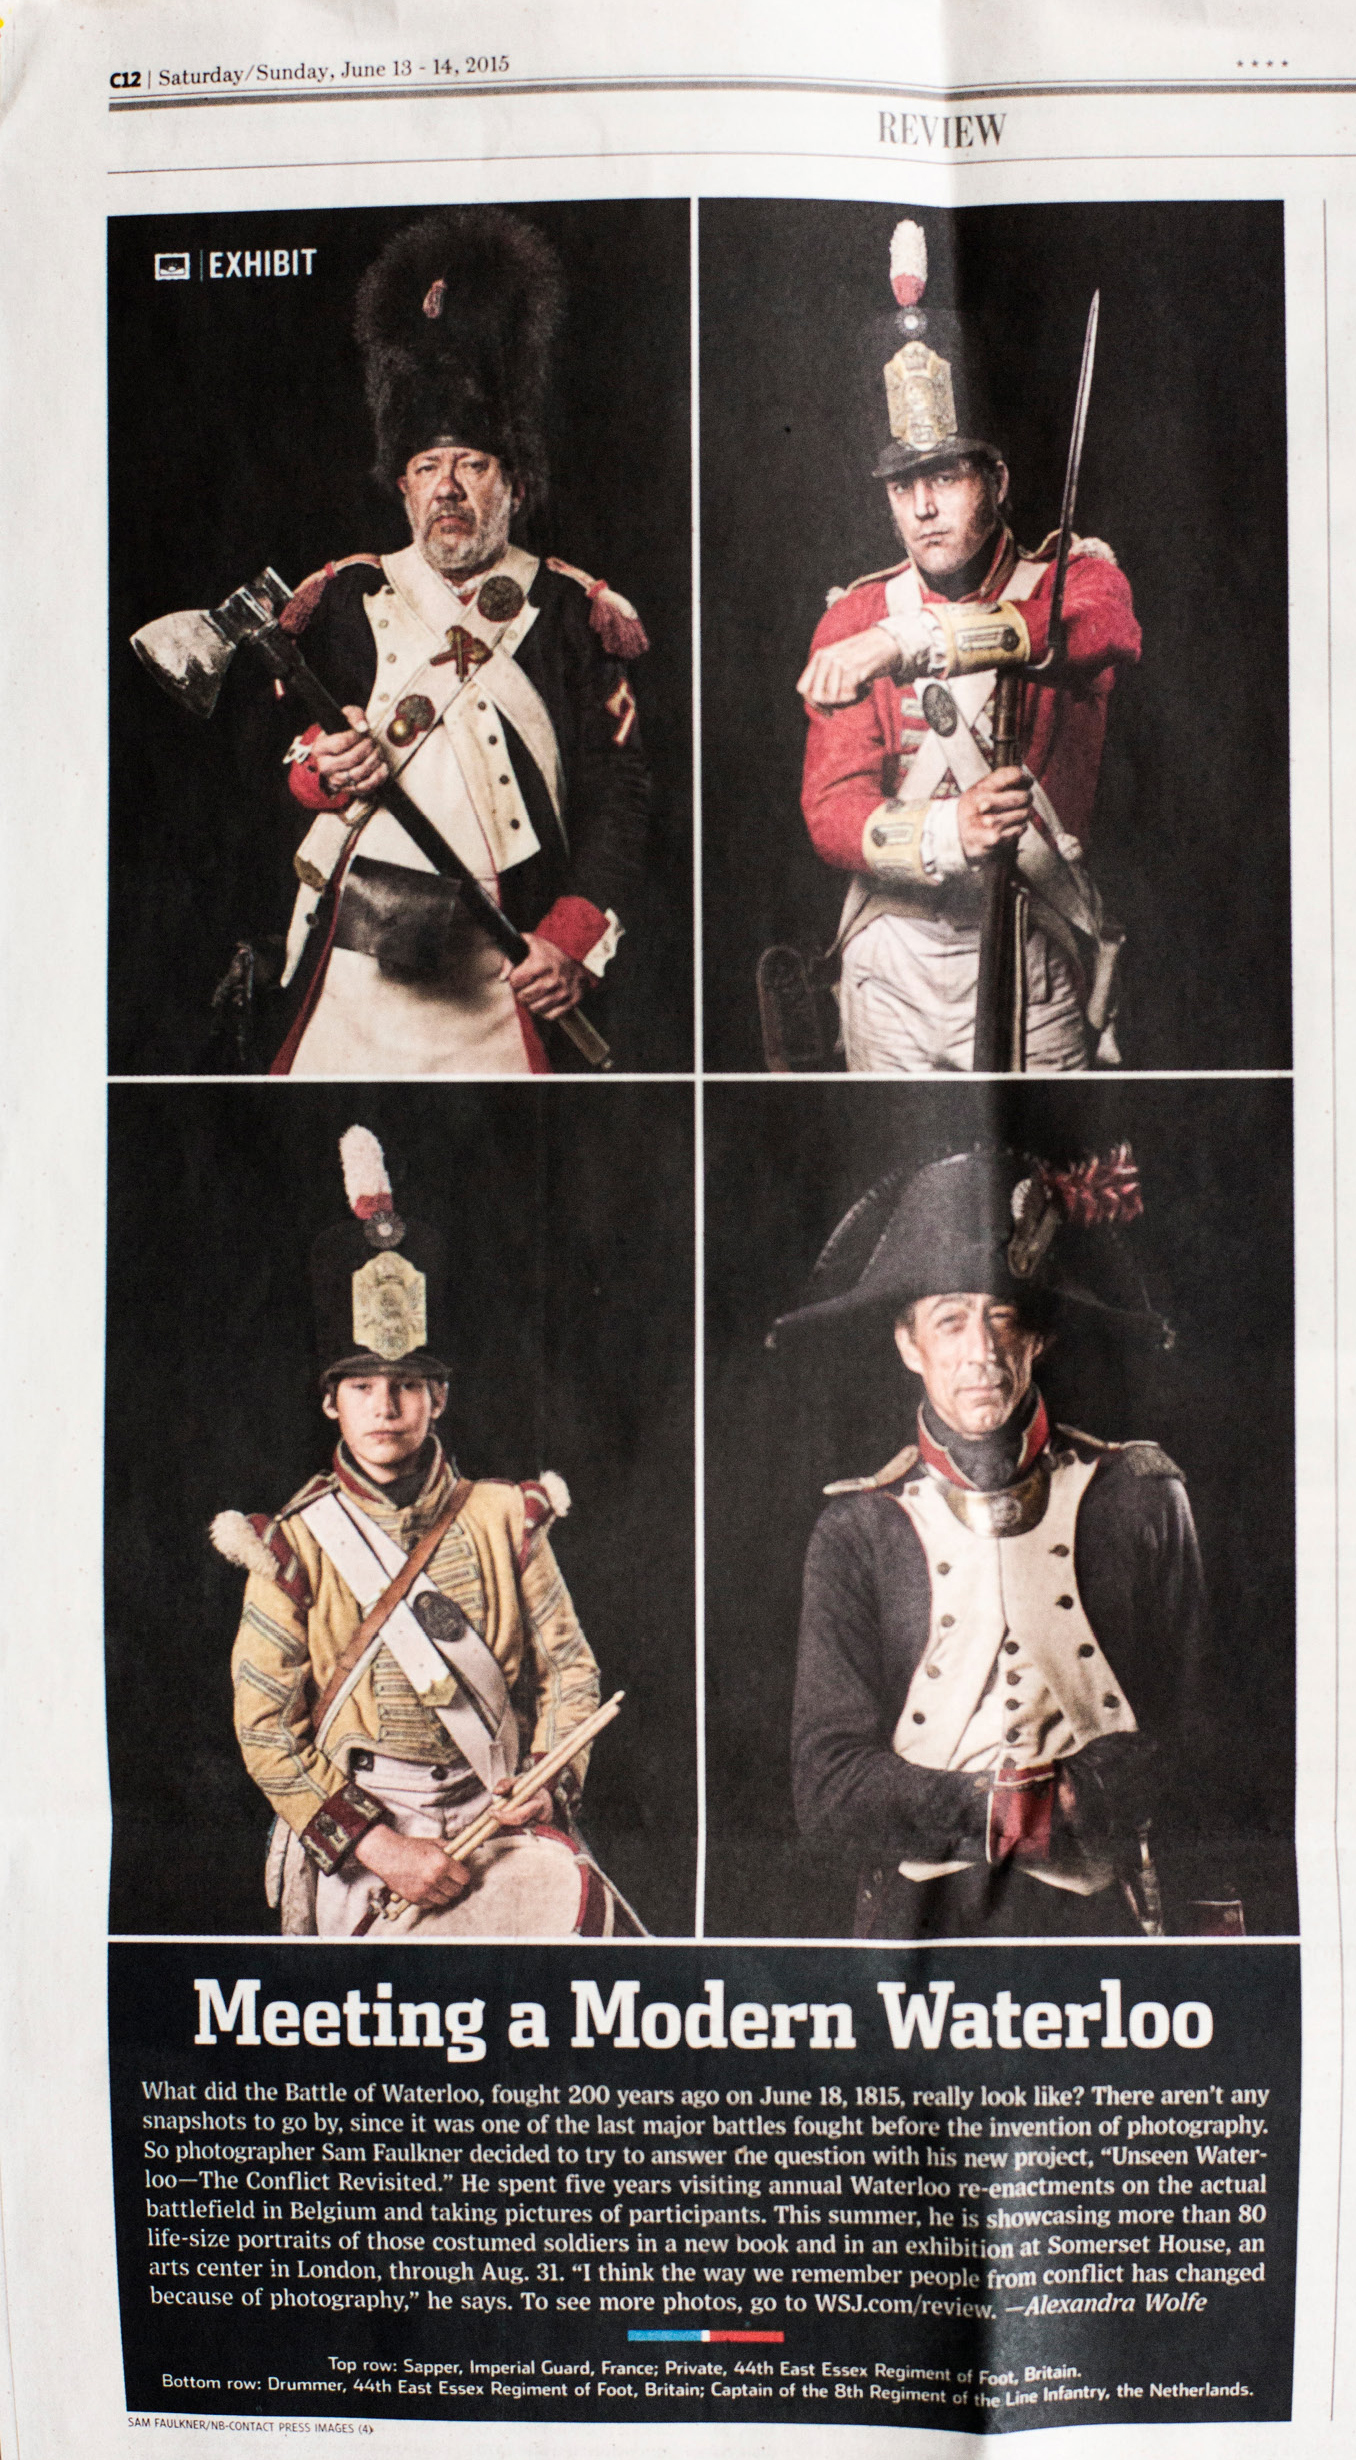 The Wall Street Journal  WSJ features Sam Faulkner's Unseen Waterloo pictures.